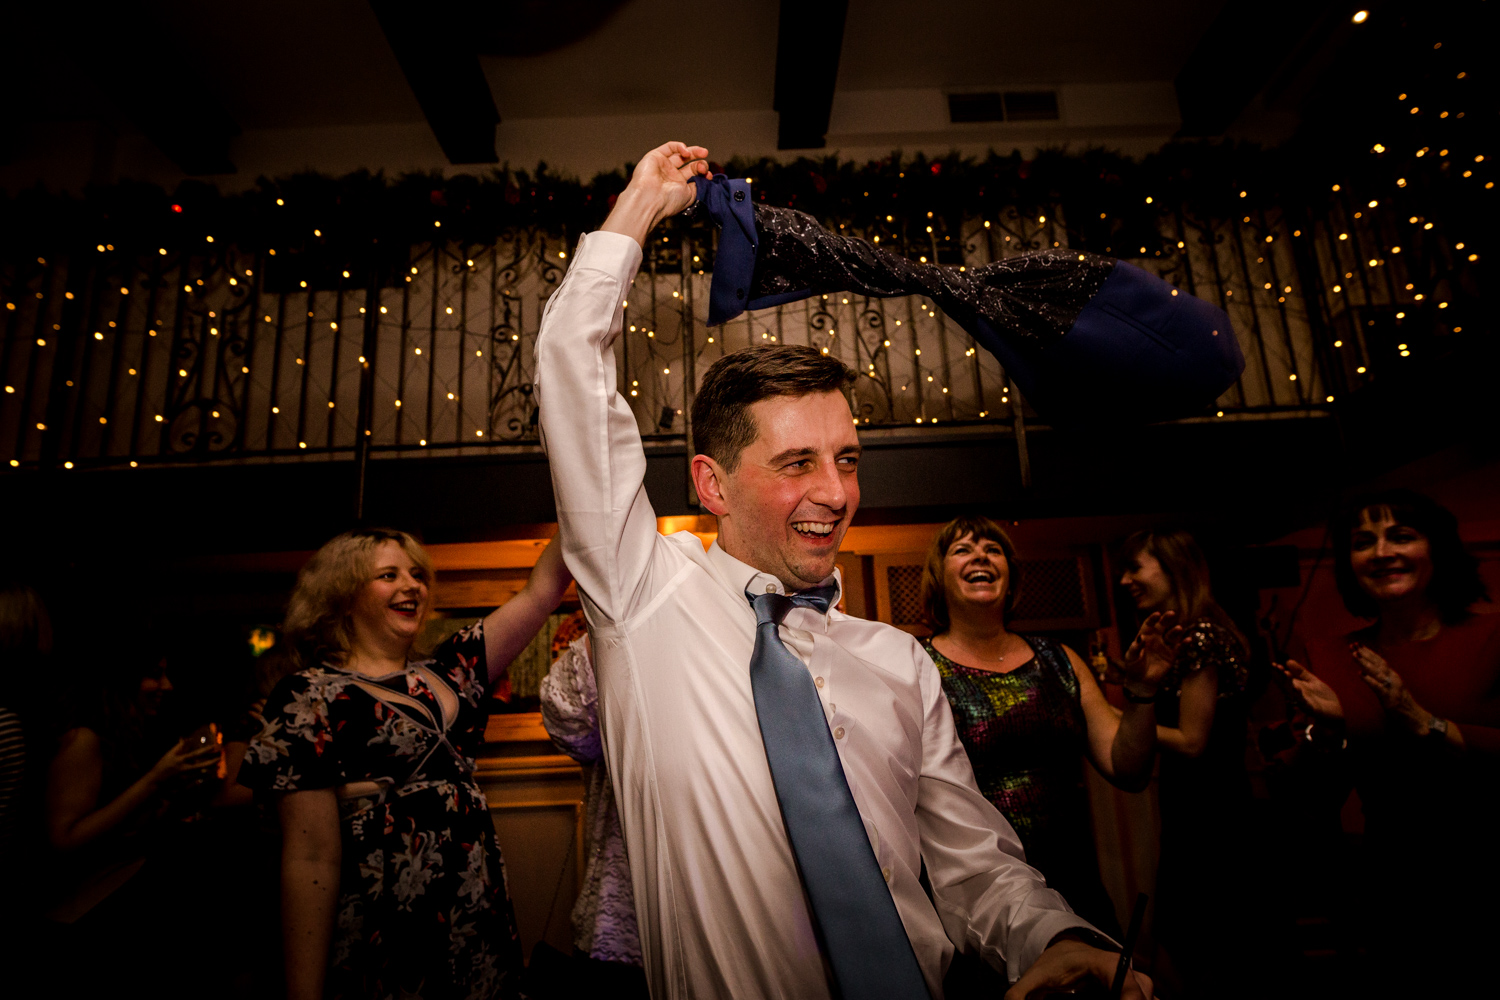 The groom on the dance floor at a Manchester wedding